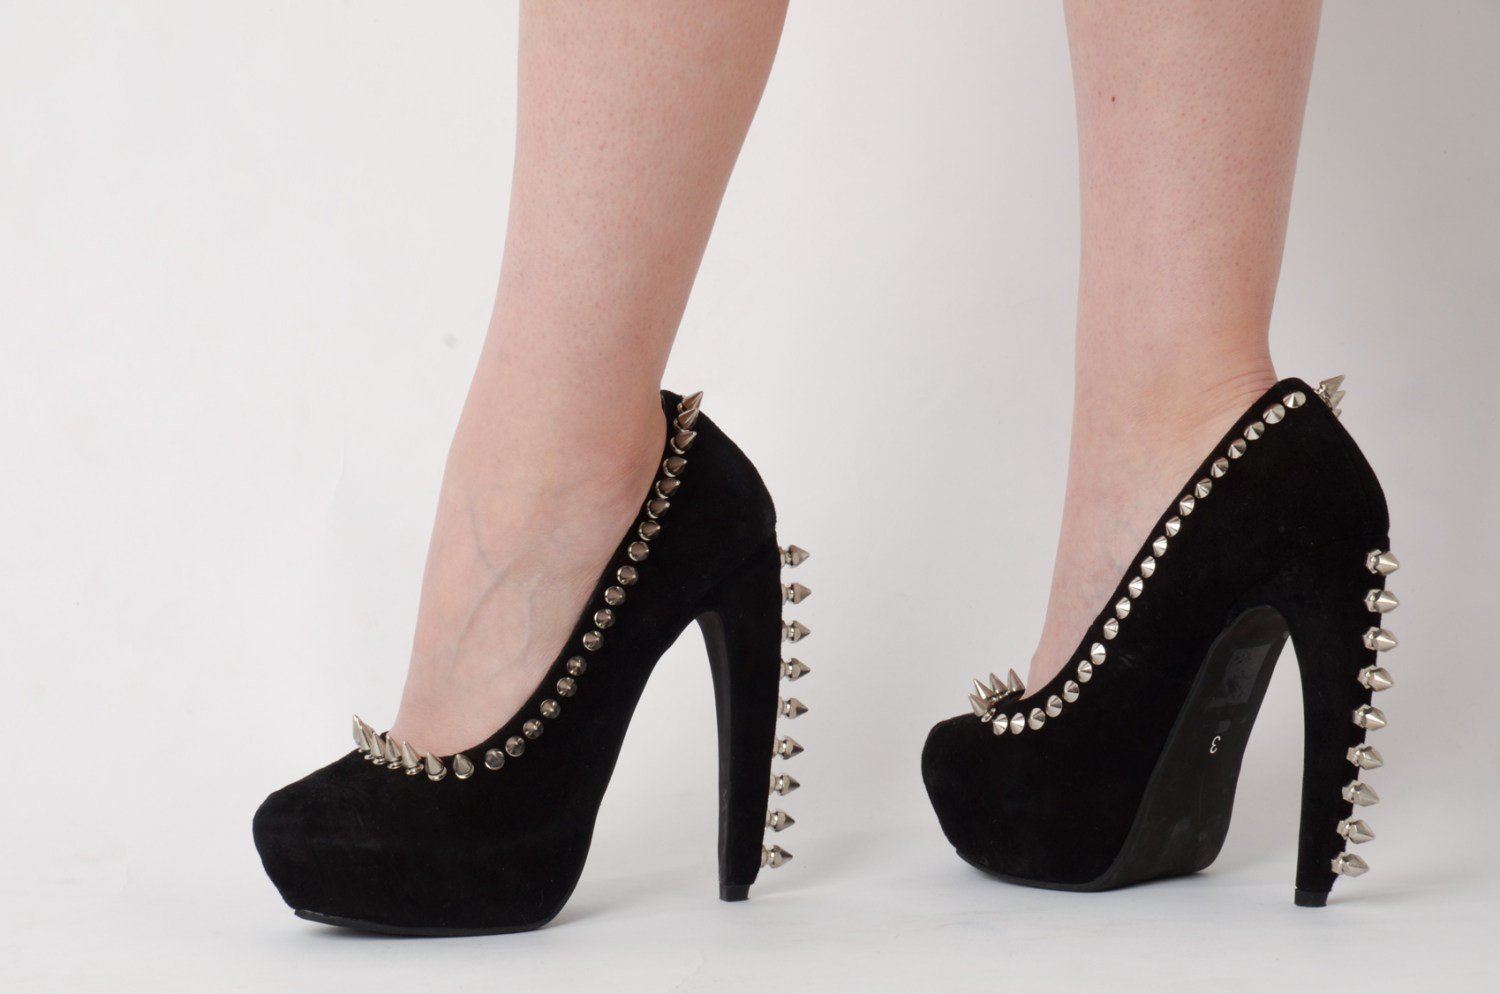 The Jeffrey Campbell Studded Pumps